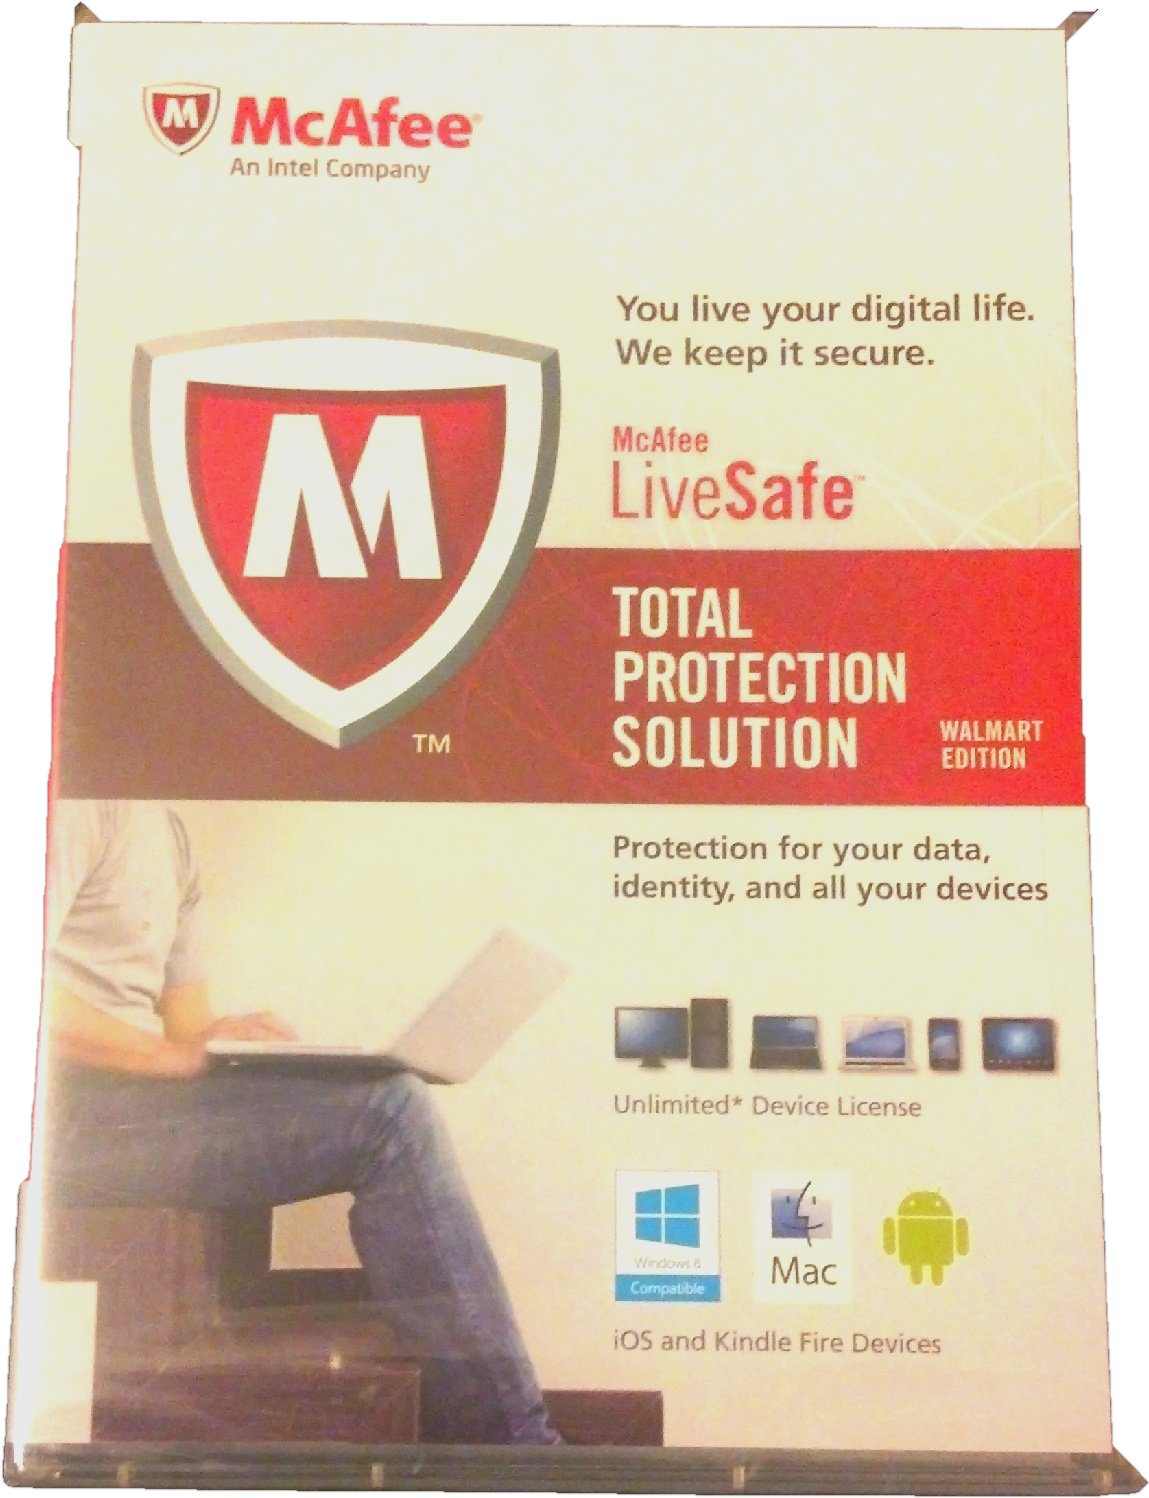 McAfee LiveSafe - Total Protection Solution (Unlimited* Device License)